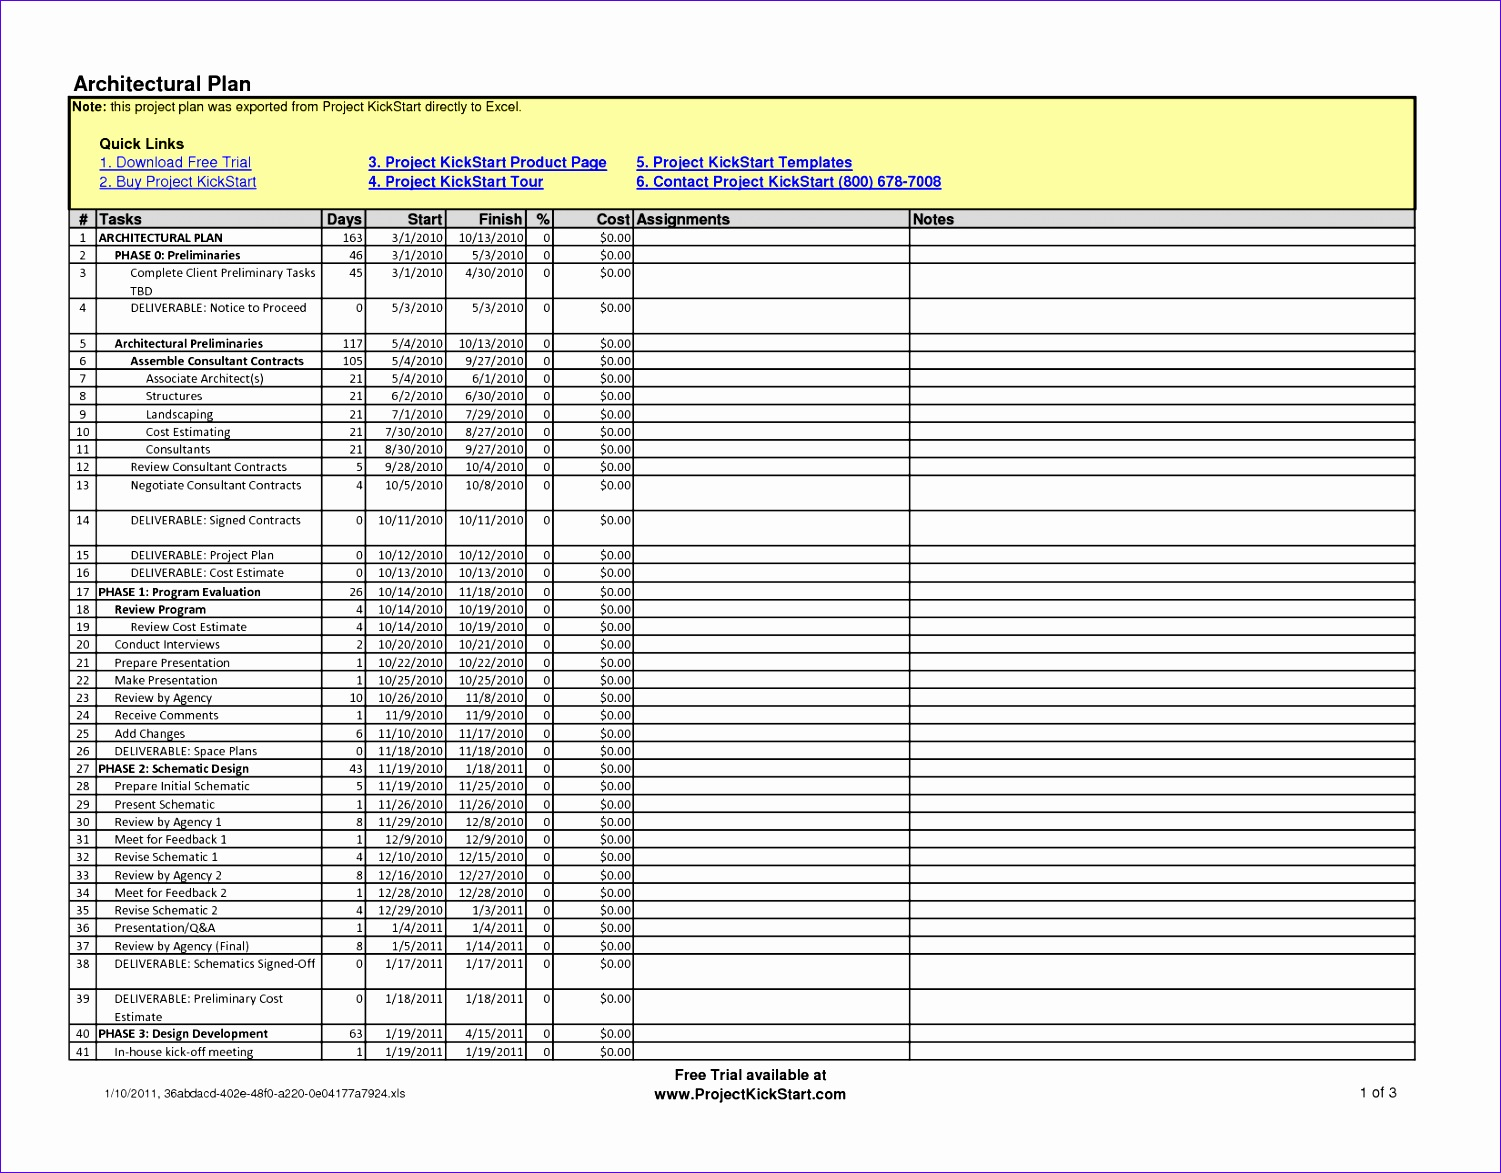 Monthly Staff Schedule Template Excel Akyi4 Best Of Architectural and Construction Project Plan and Schedule Template